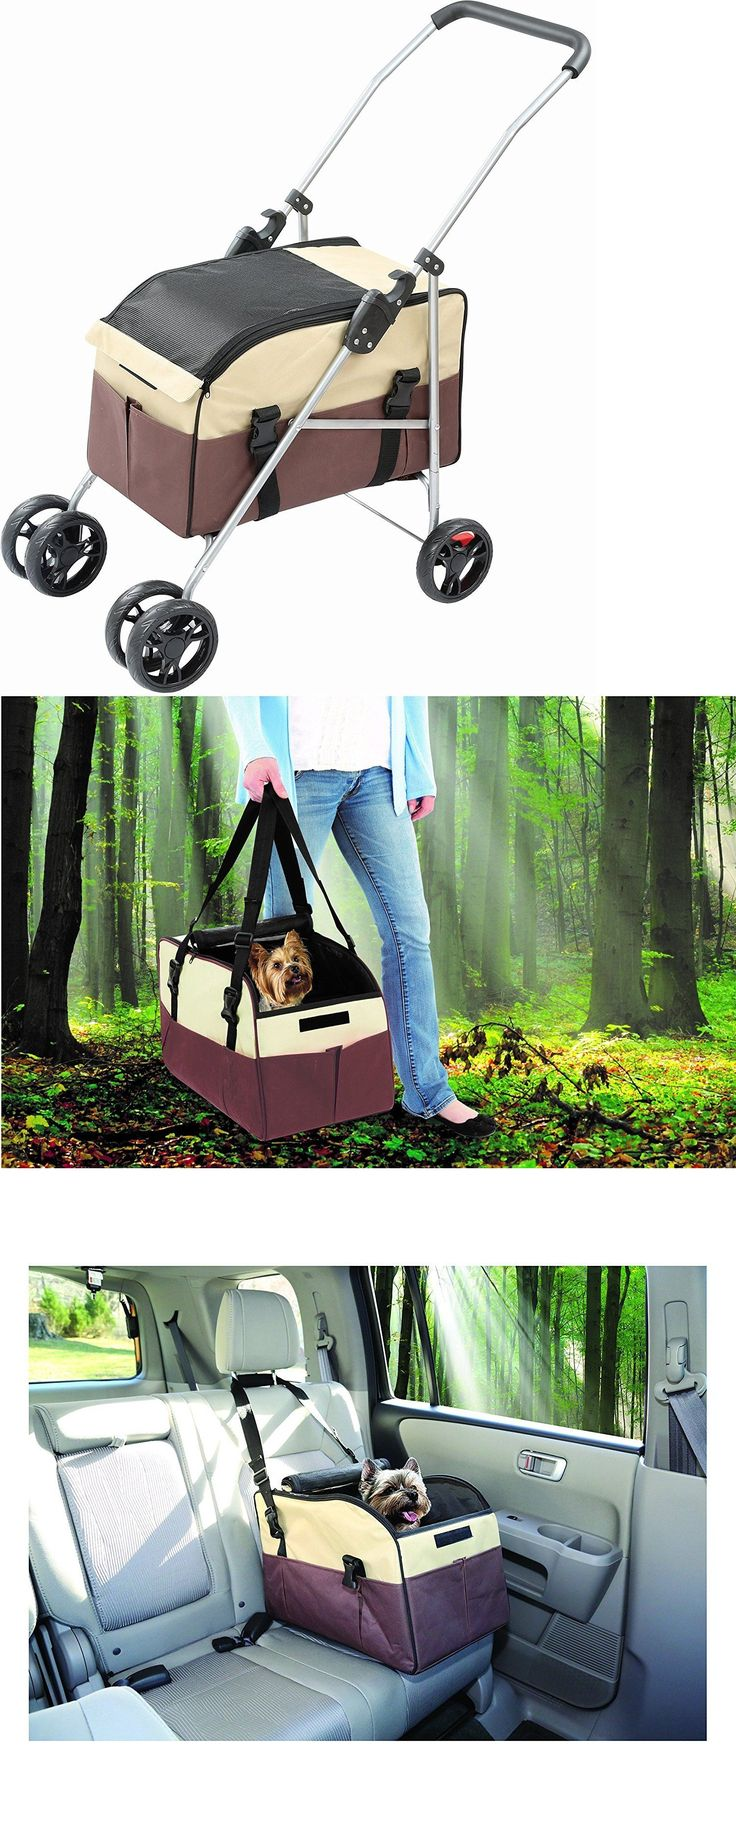 Strollers 116380: Pet Dog Cat Stroller Car Seat And Travel Carrier W Adjustable Shoulder Strap 3In1 -> BUY IT NOW ONLY: $59.99 on eBay!